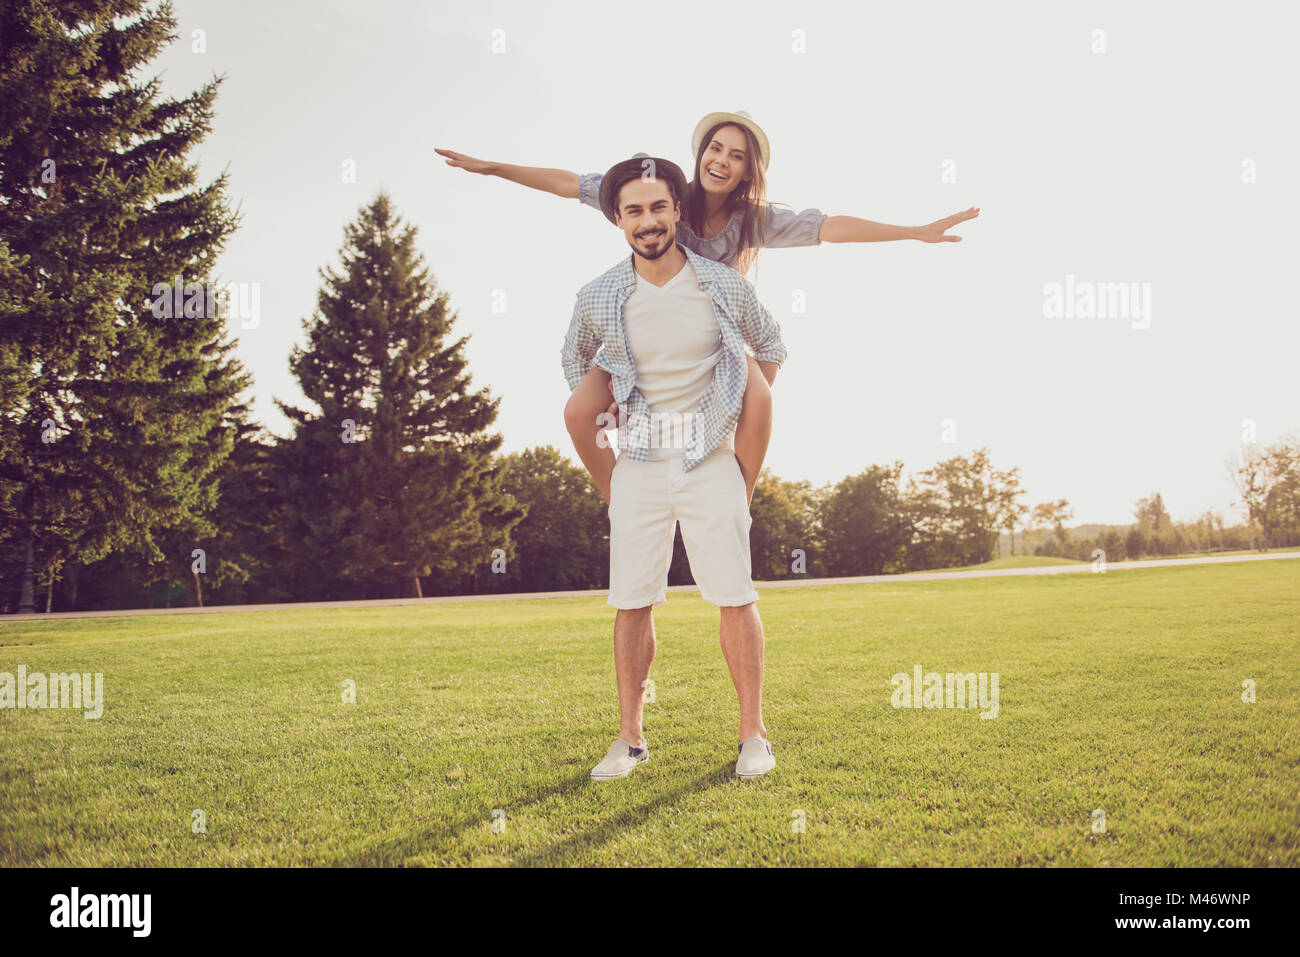 Cute sweet partner piggybacking his lady, she rides him. Date outside, well dressed, excited, lovely. Good day, - Stock Image